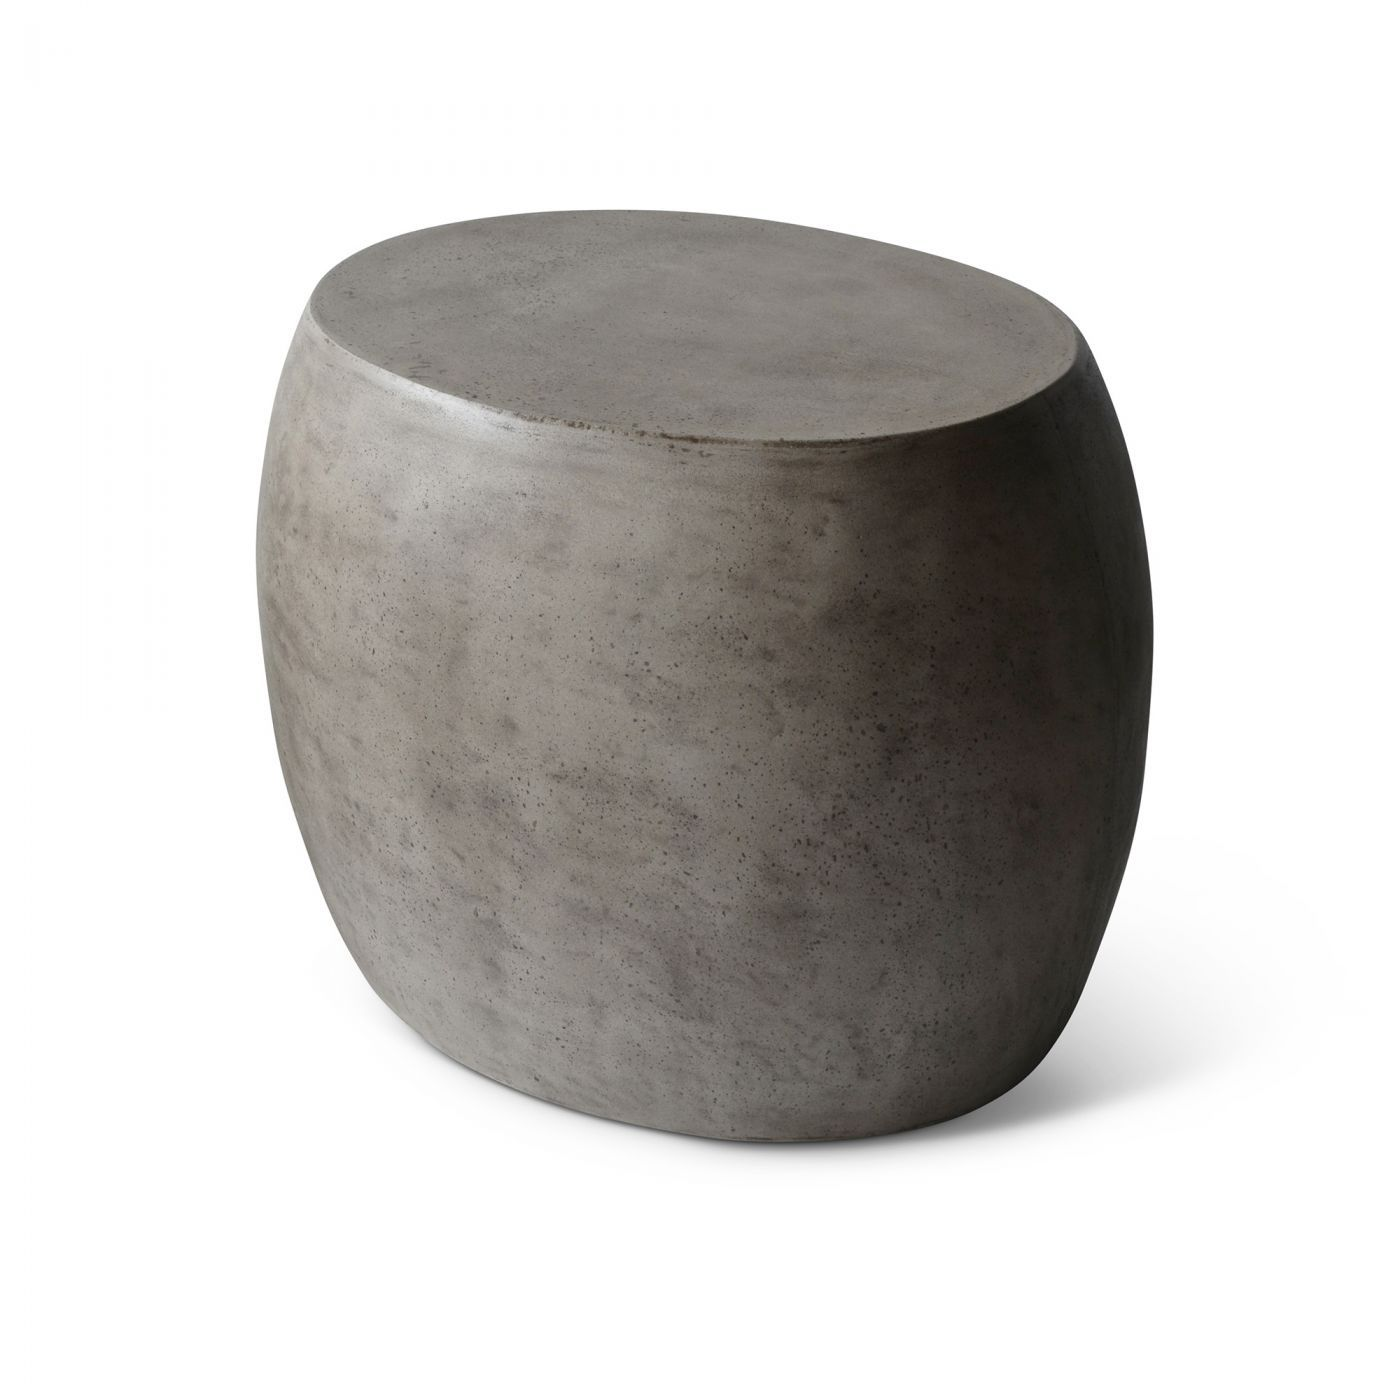 A Side Table Made Of Fiber Reinforced Concrete, Softened With A Rounded  Silhouette.